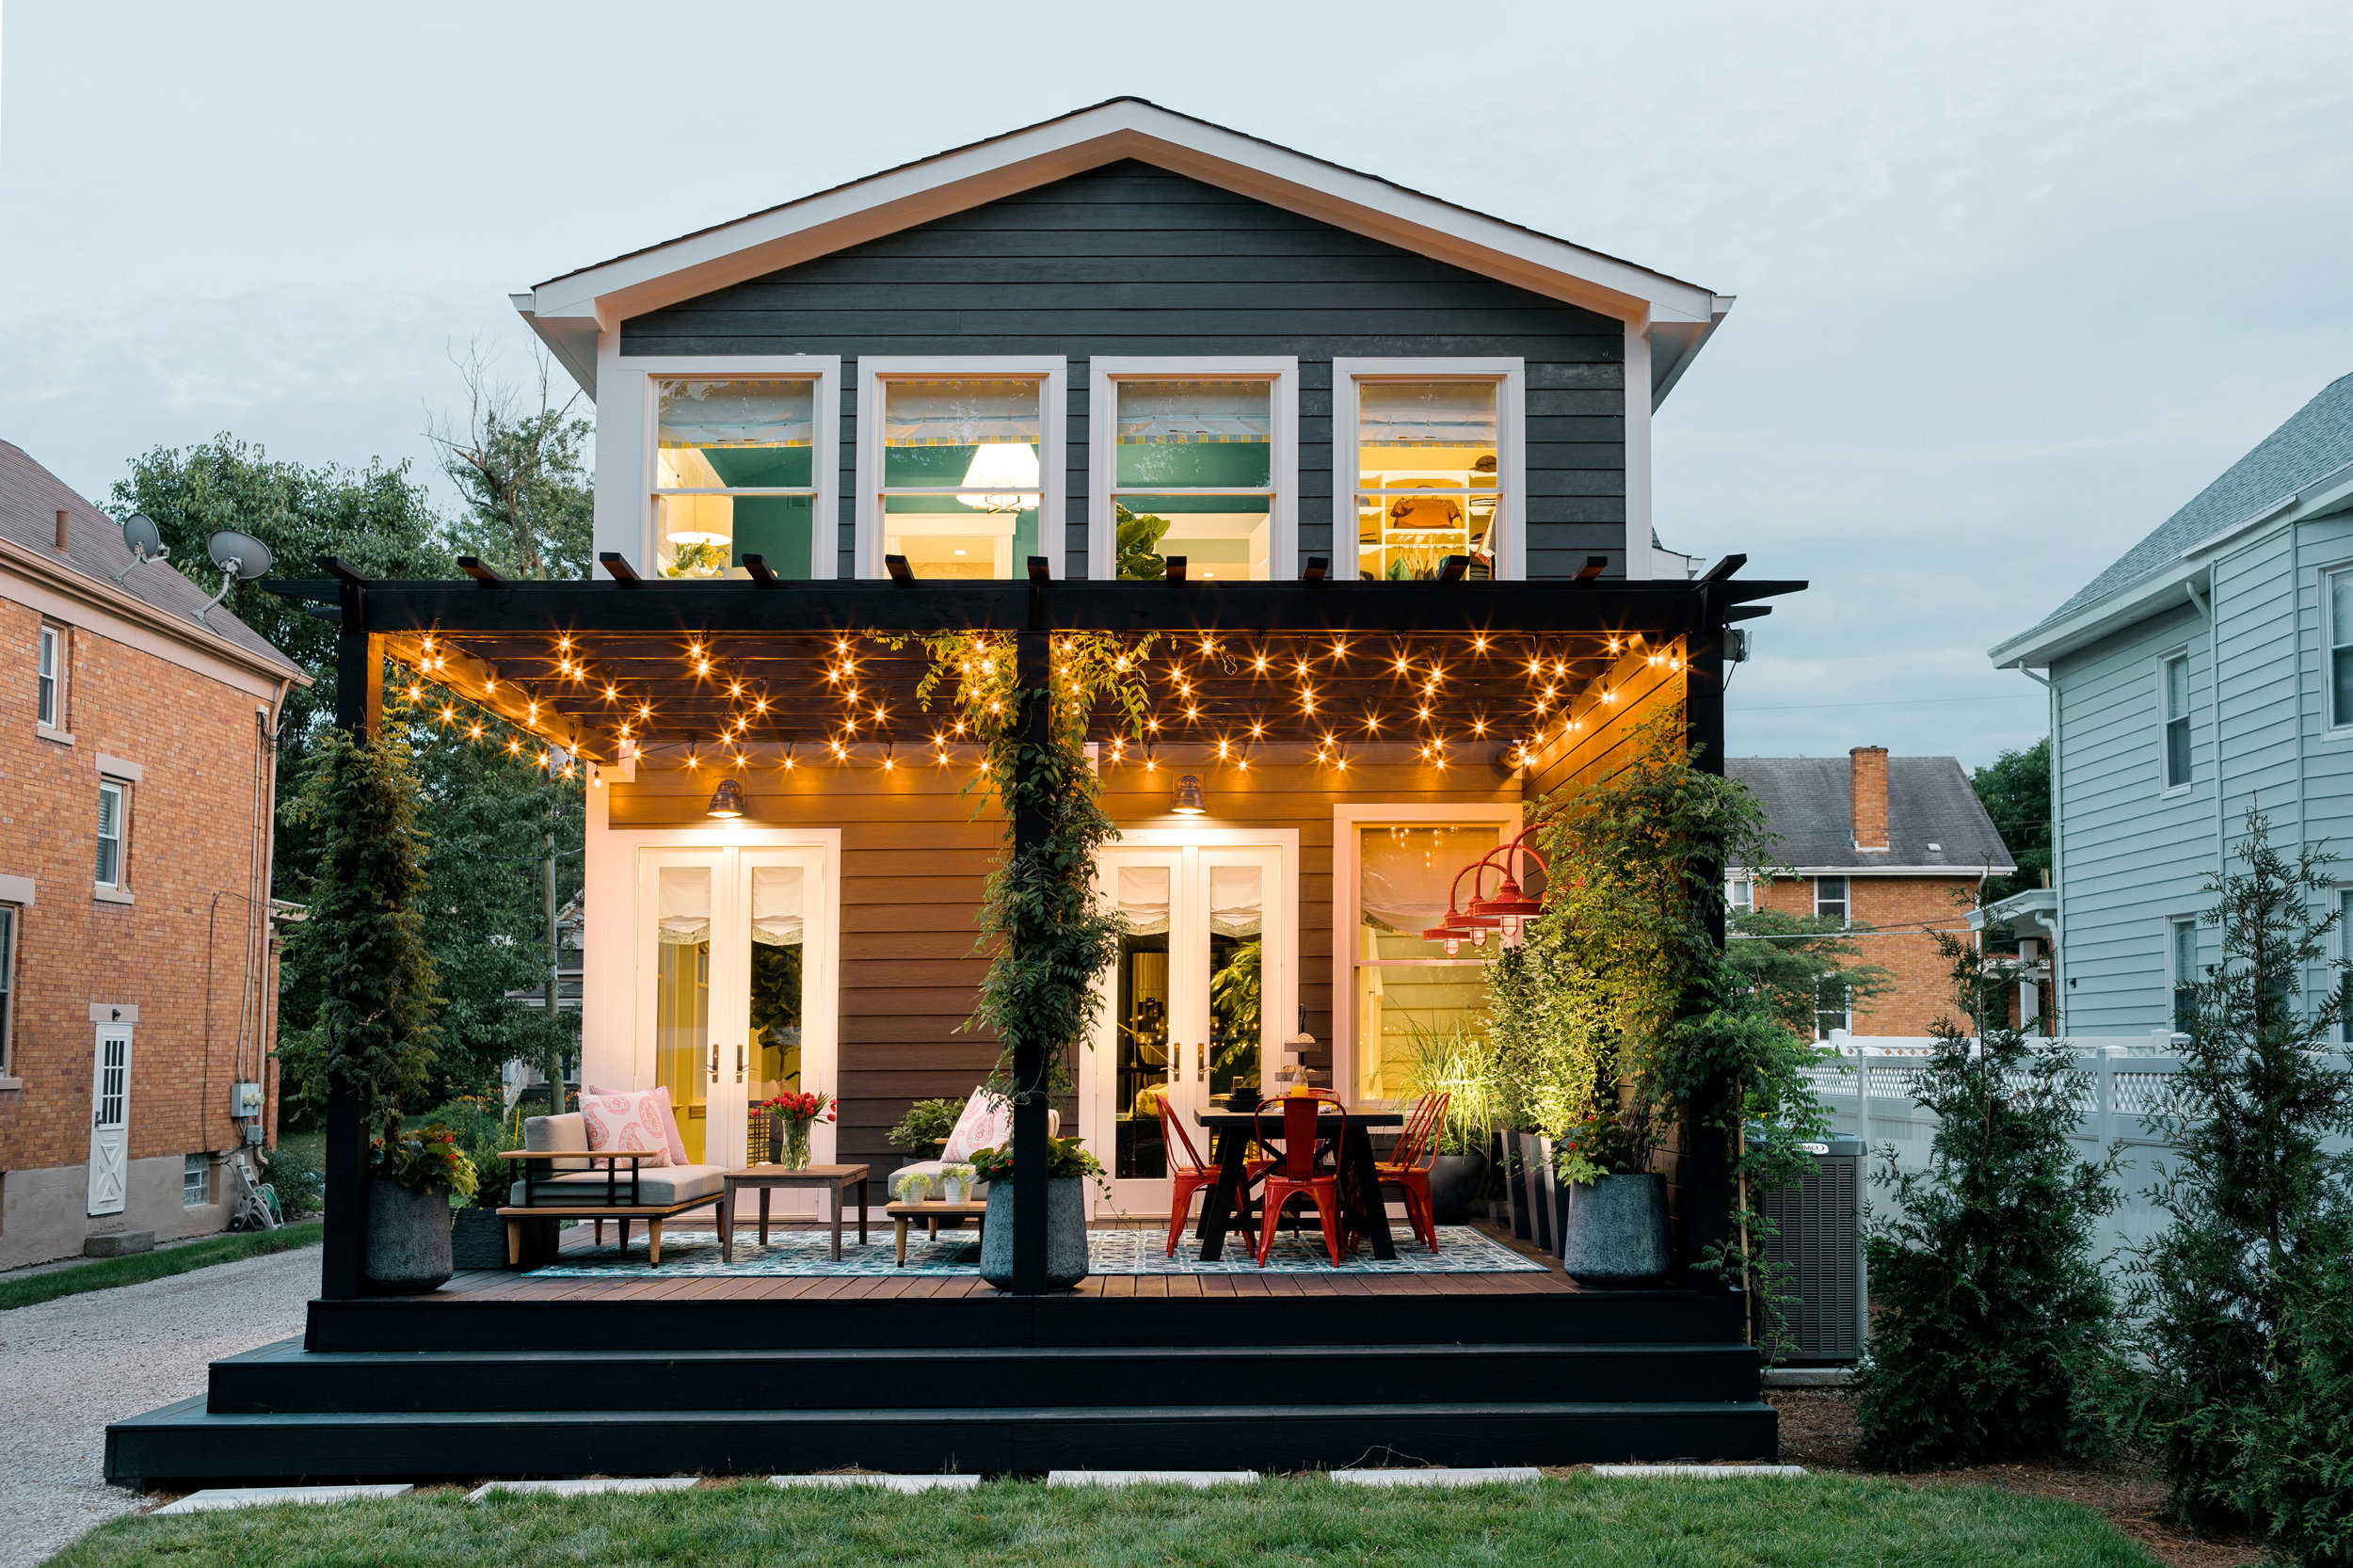 uo2018_backyard-22-back-porch-dusk-lights-KB2A0048_h.jpg